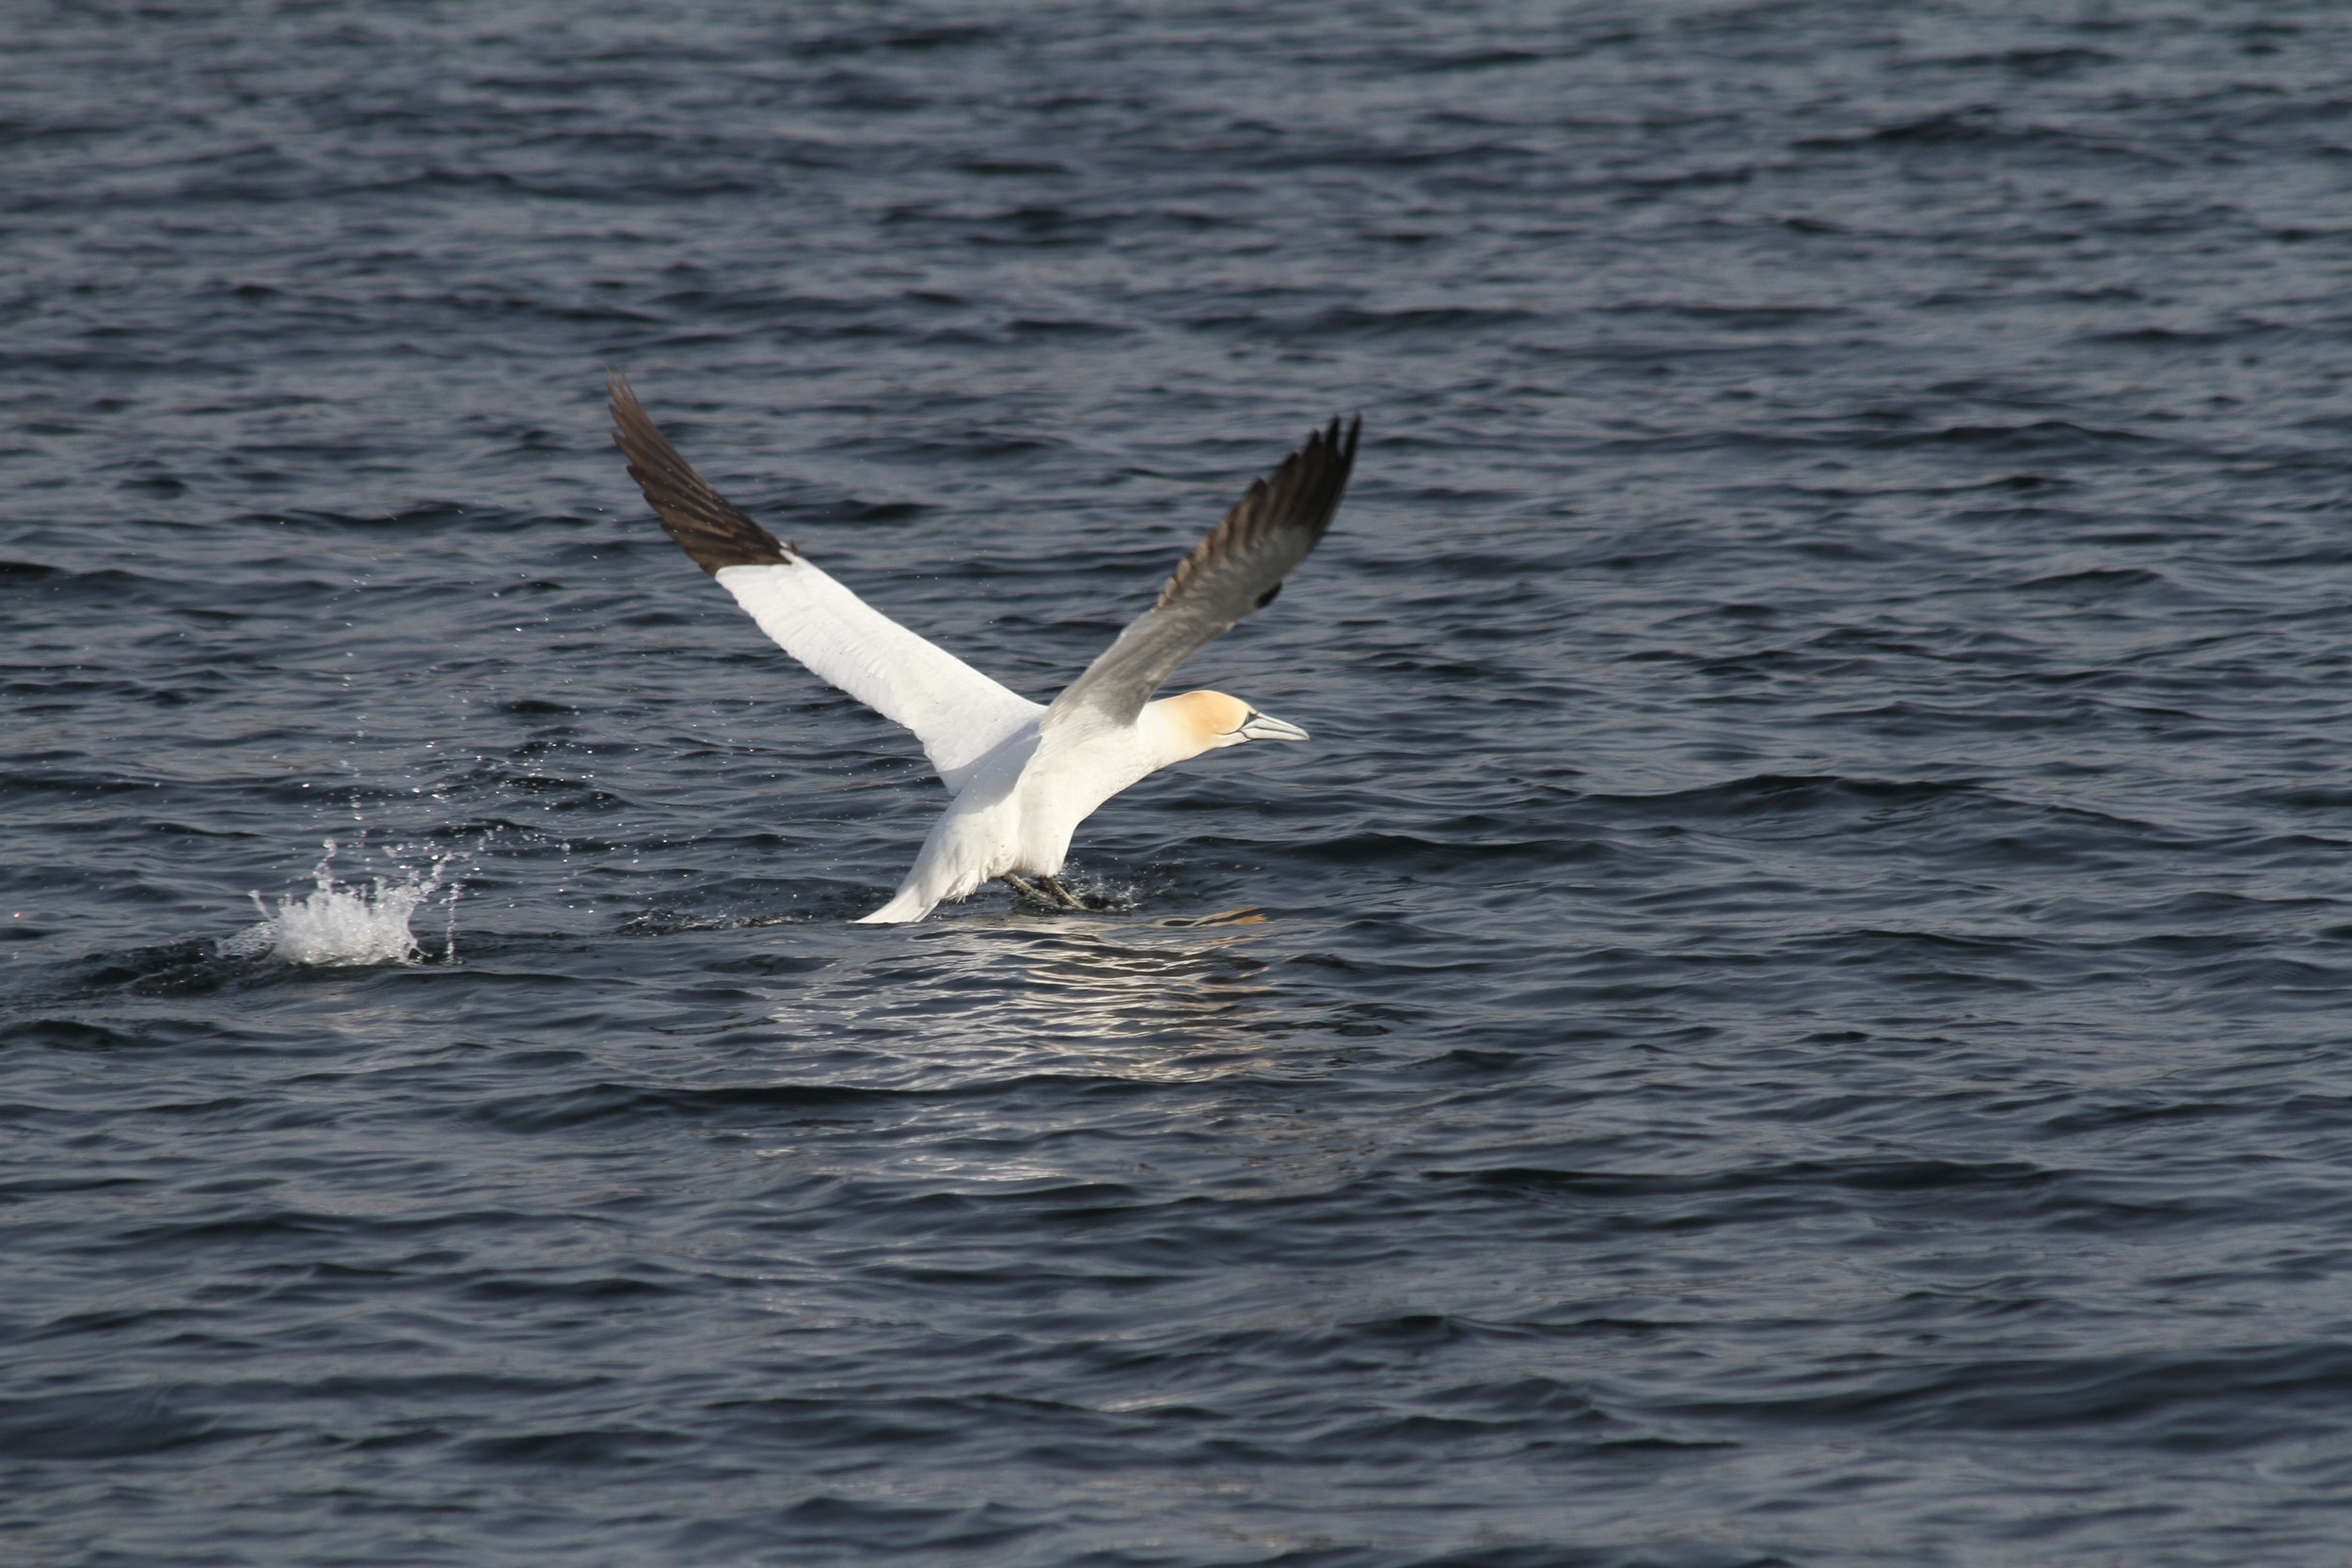 One of the many gannets seen on the survey